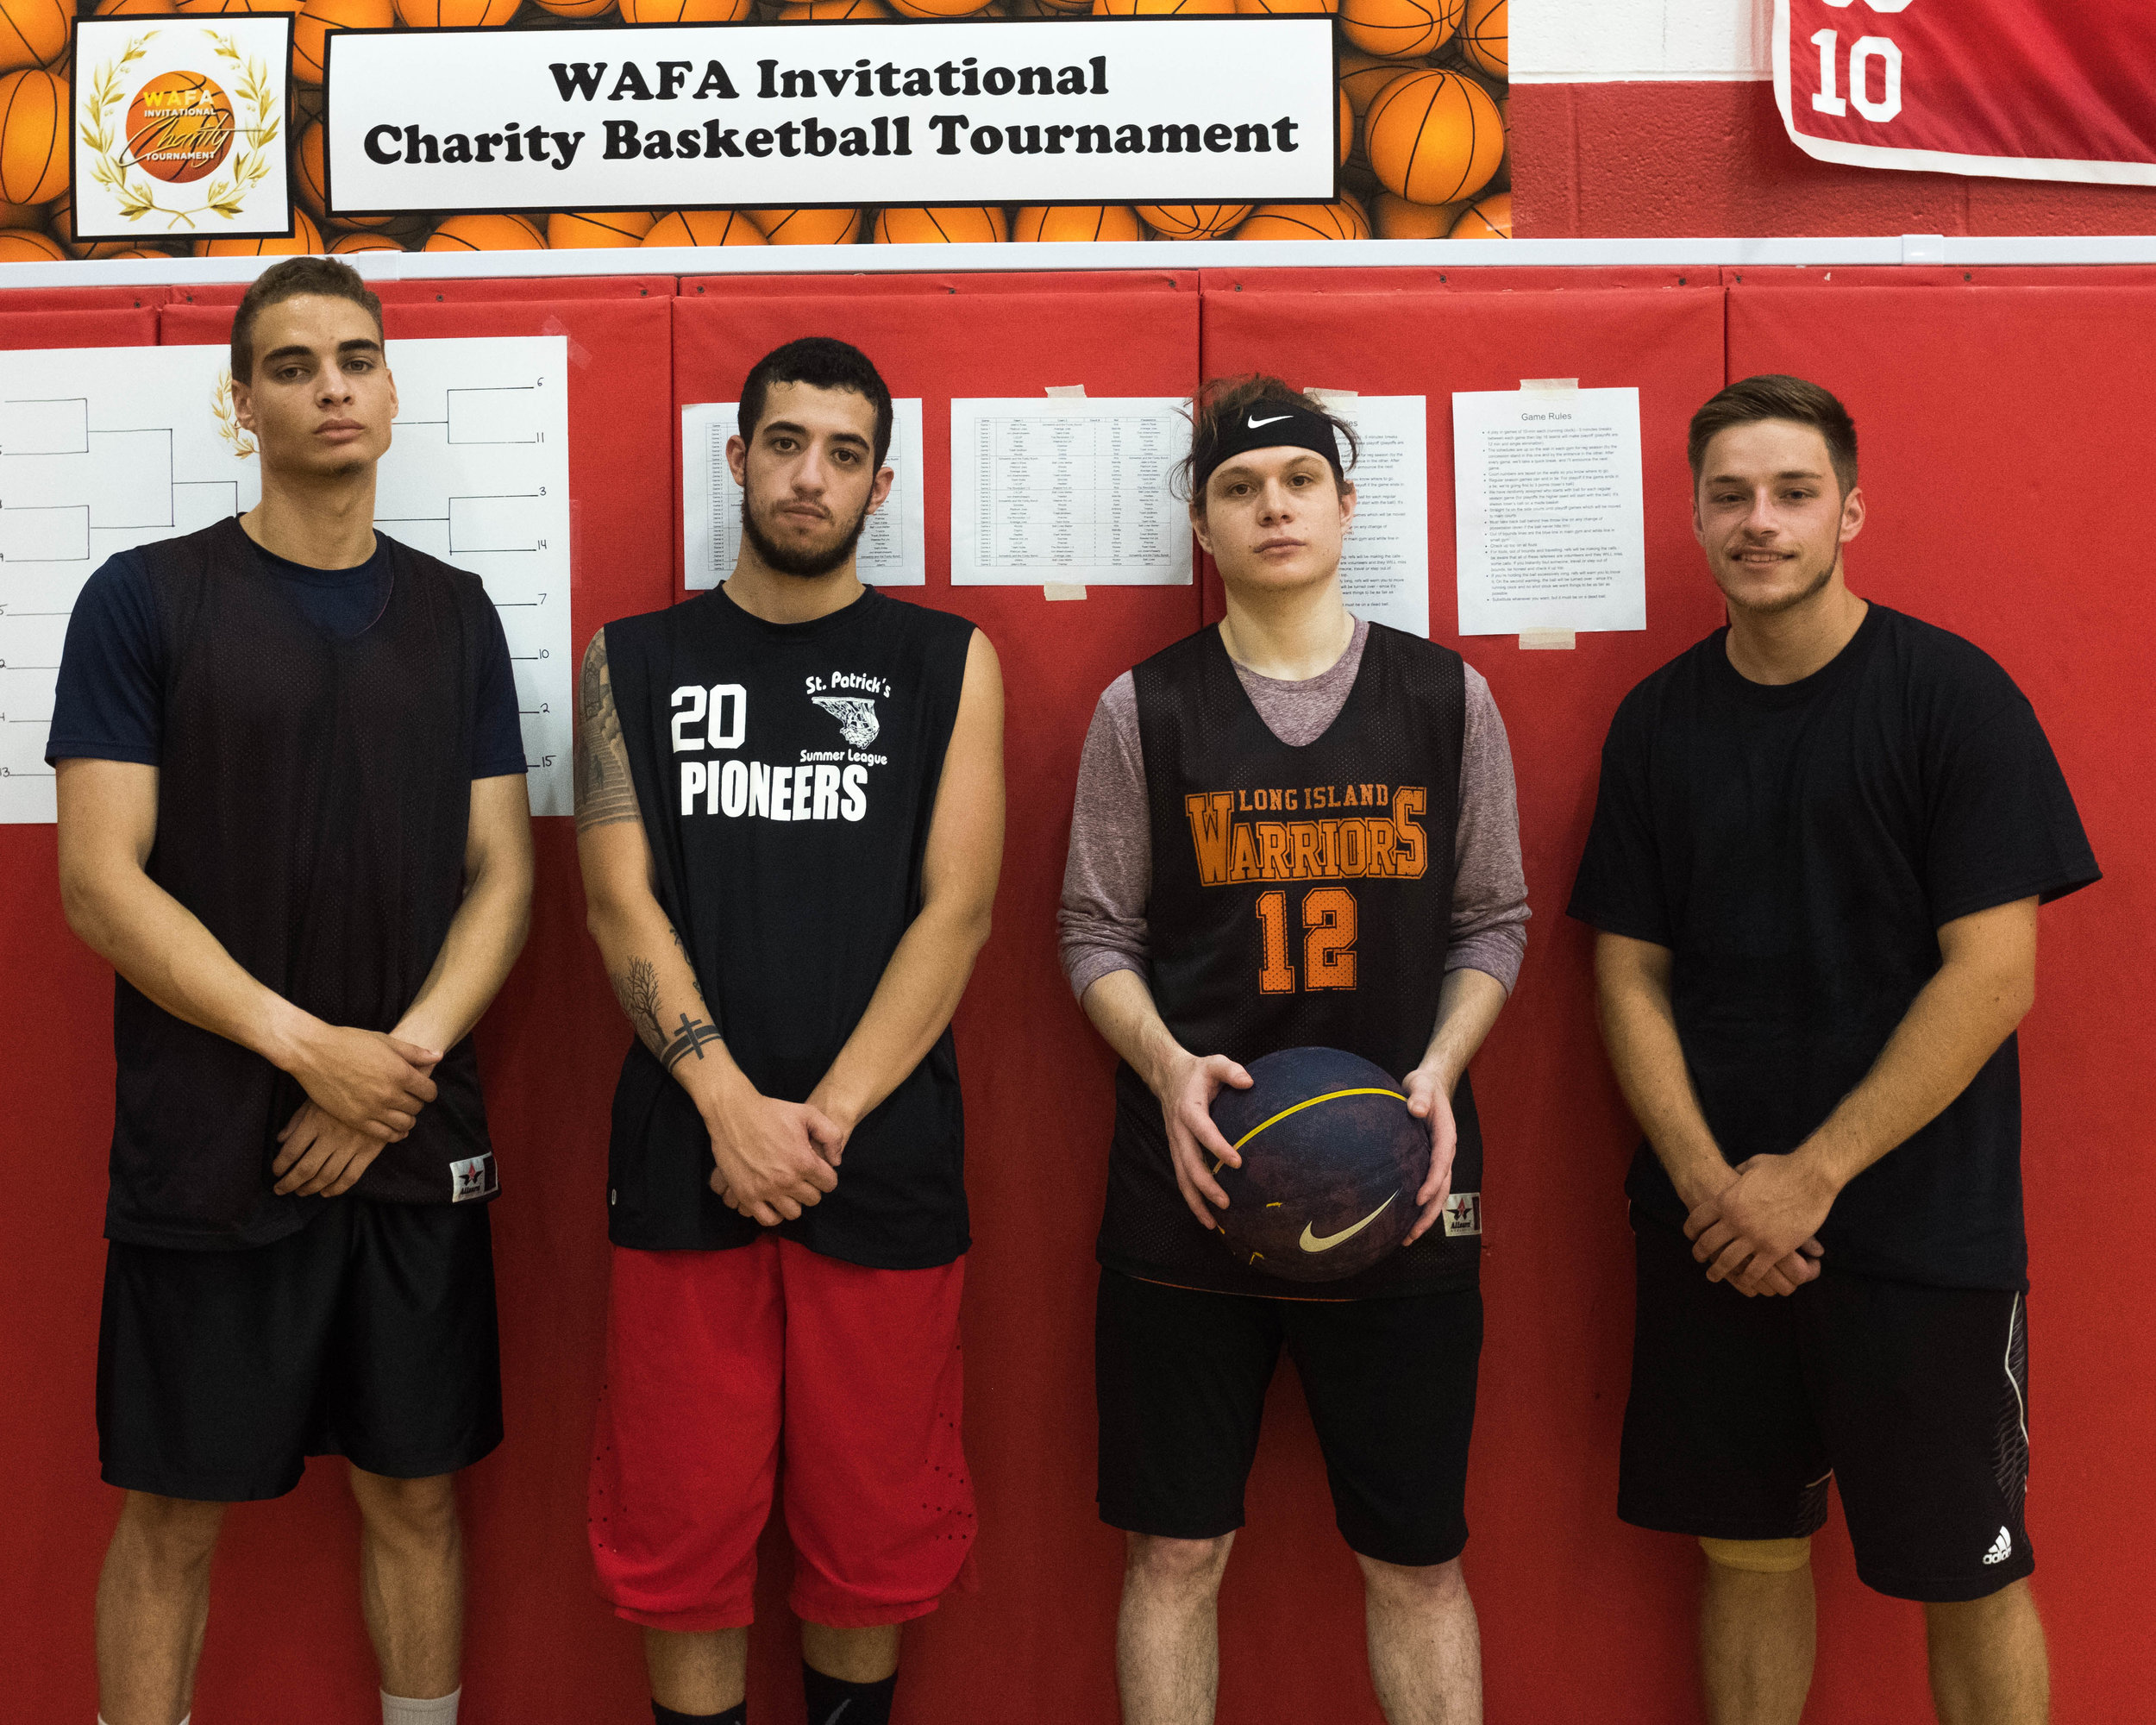 WAFA TEAM PHOTOS JPEG-16.jpg